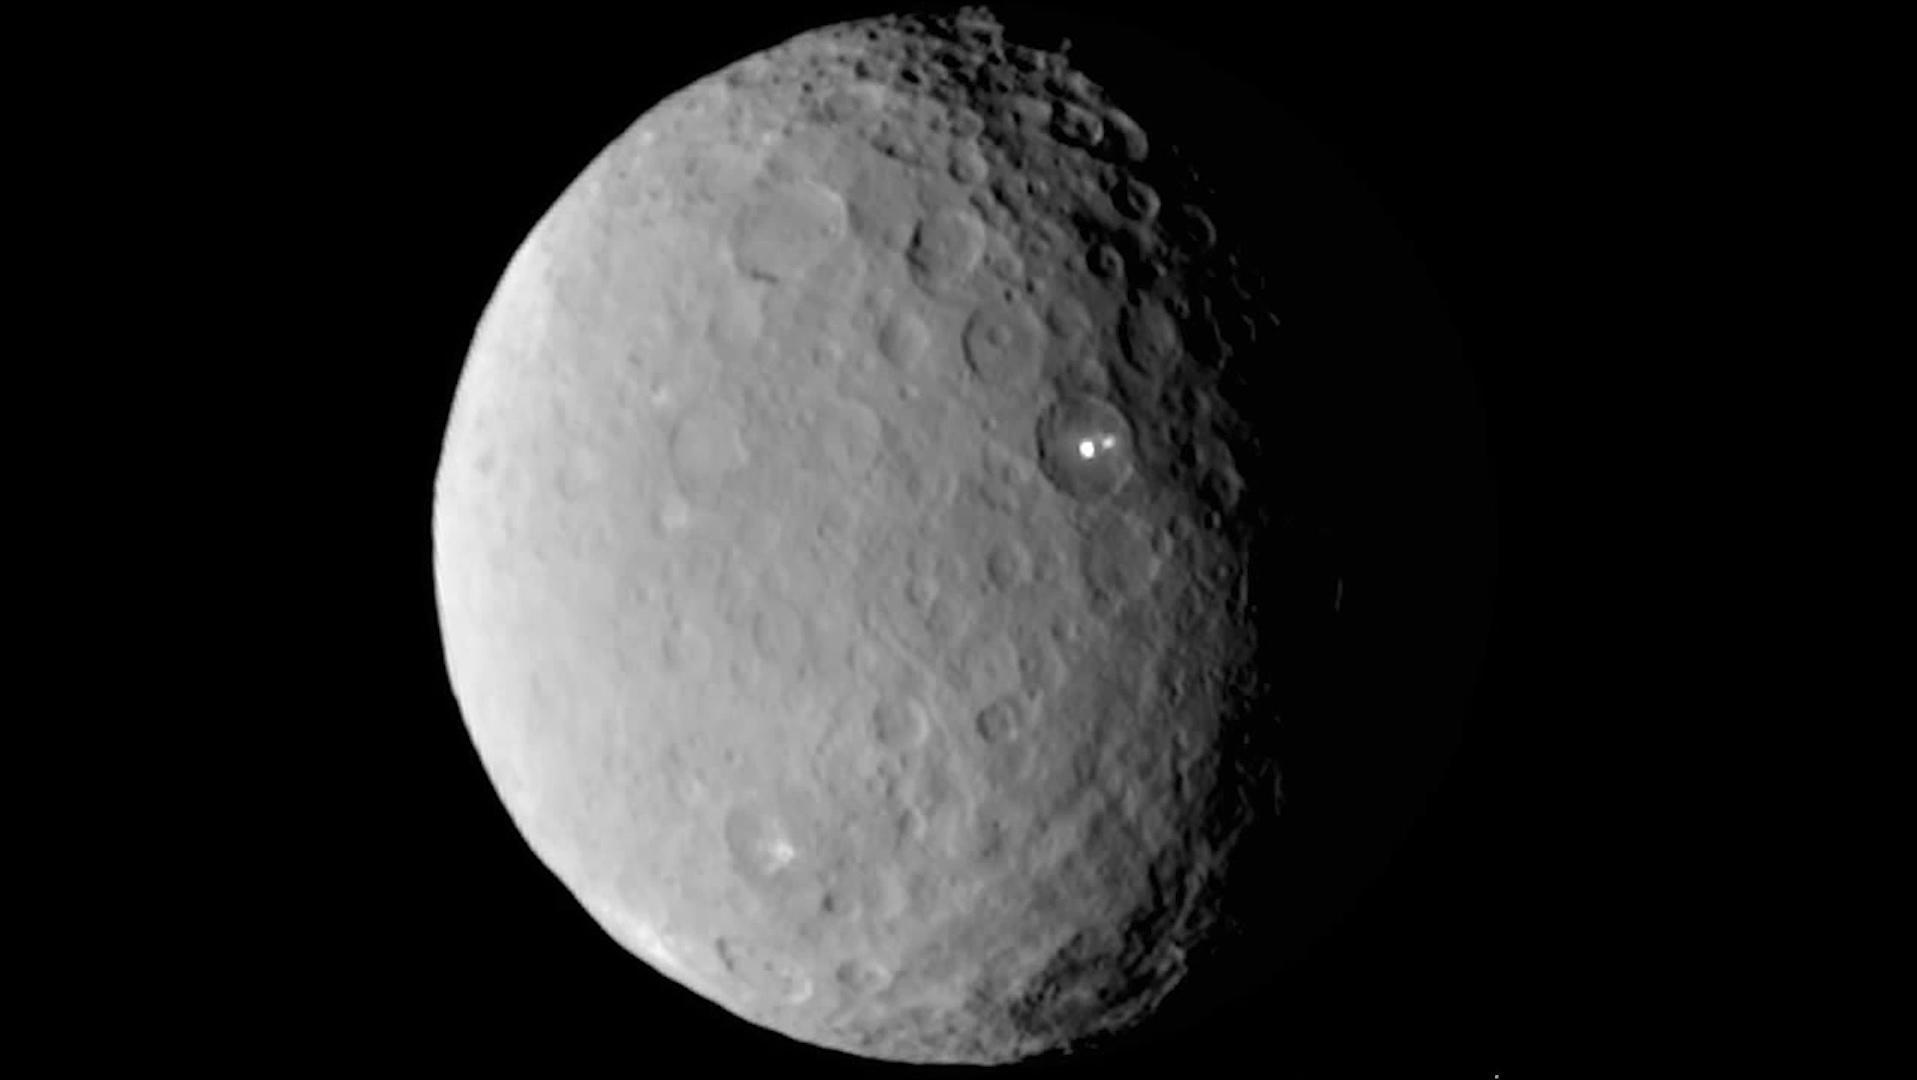 U.S. science probe nears unexplored dwarf planet Ceres